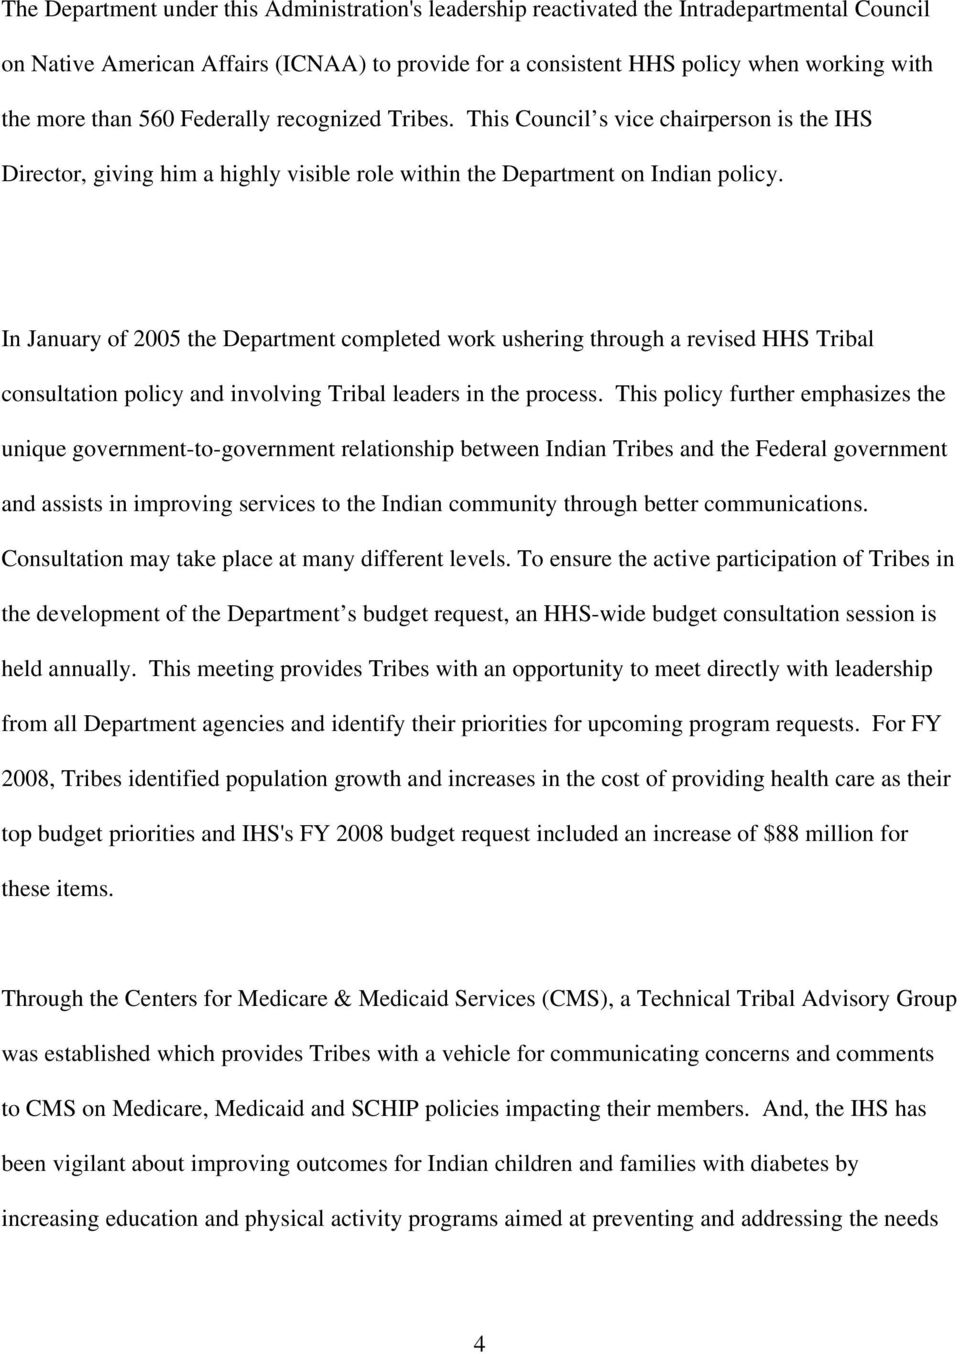 In January of 2005 the Department completed work ushering through a revised HHS Tribal consultation policy and involving Tribal leaders in the process.